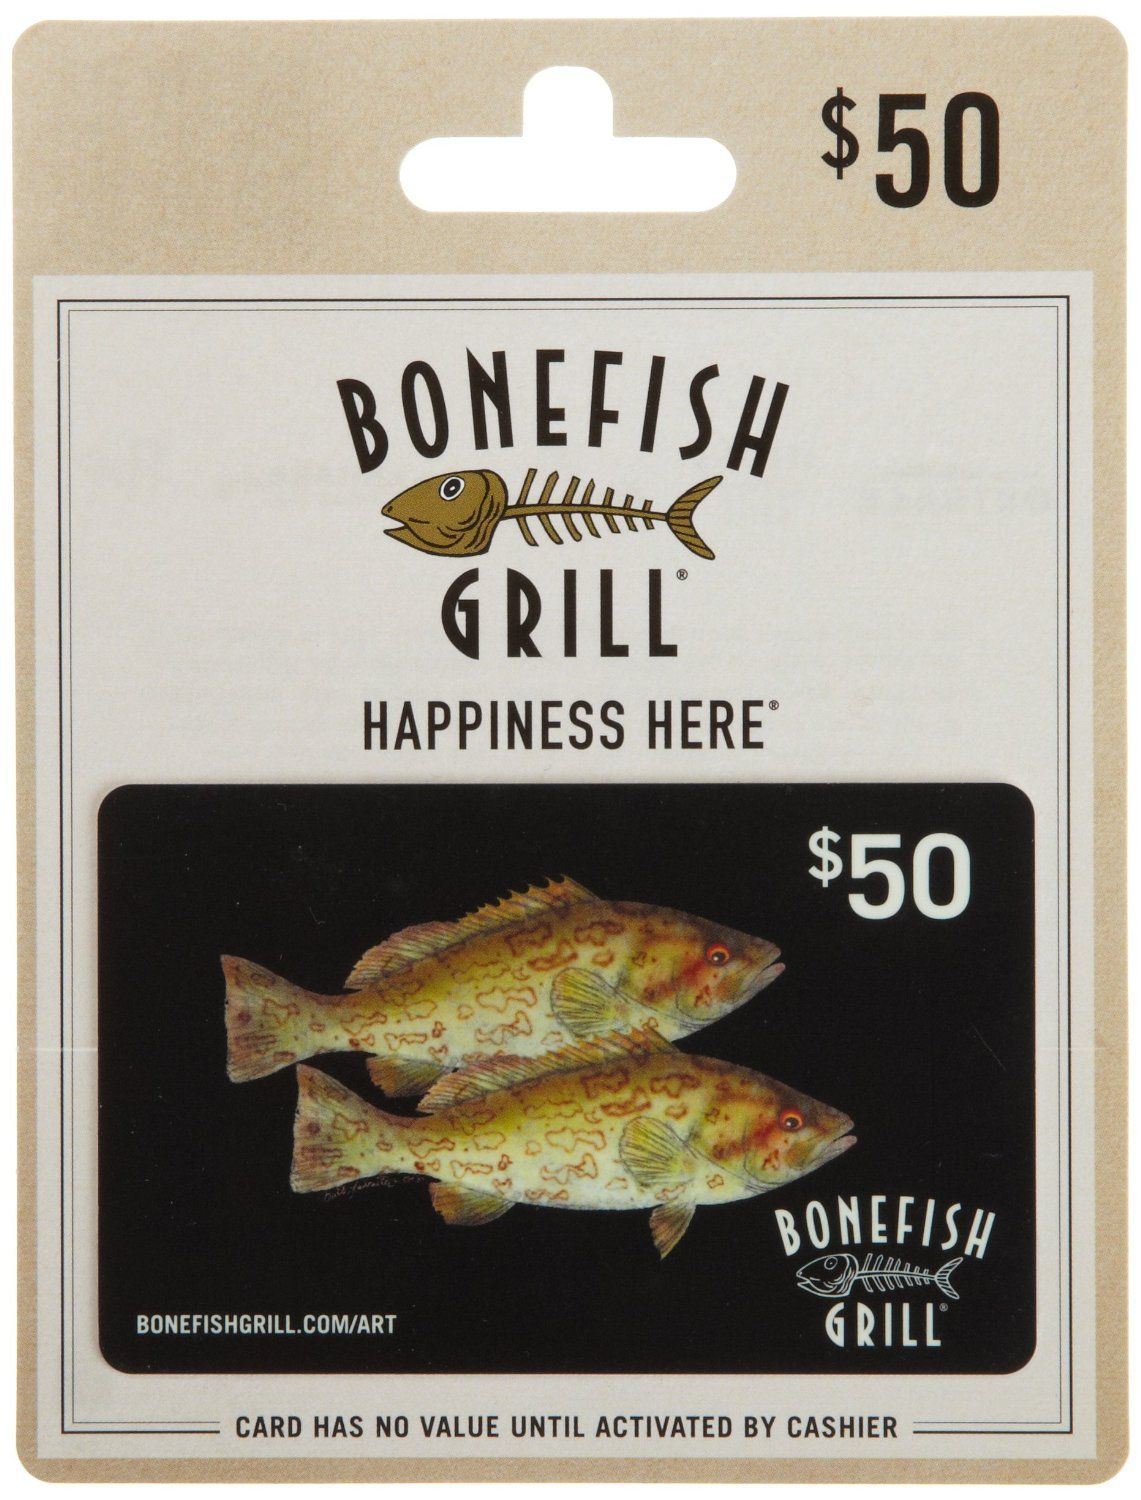 Bonefish grill gift card grilling gifts food gift cards